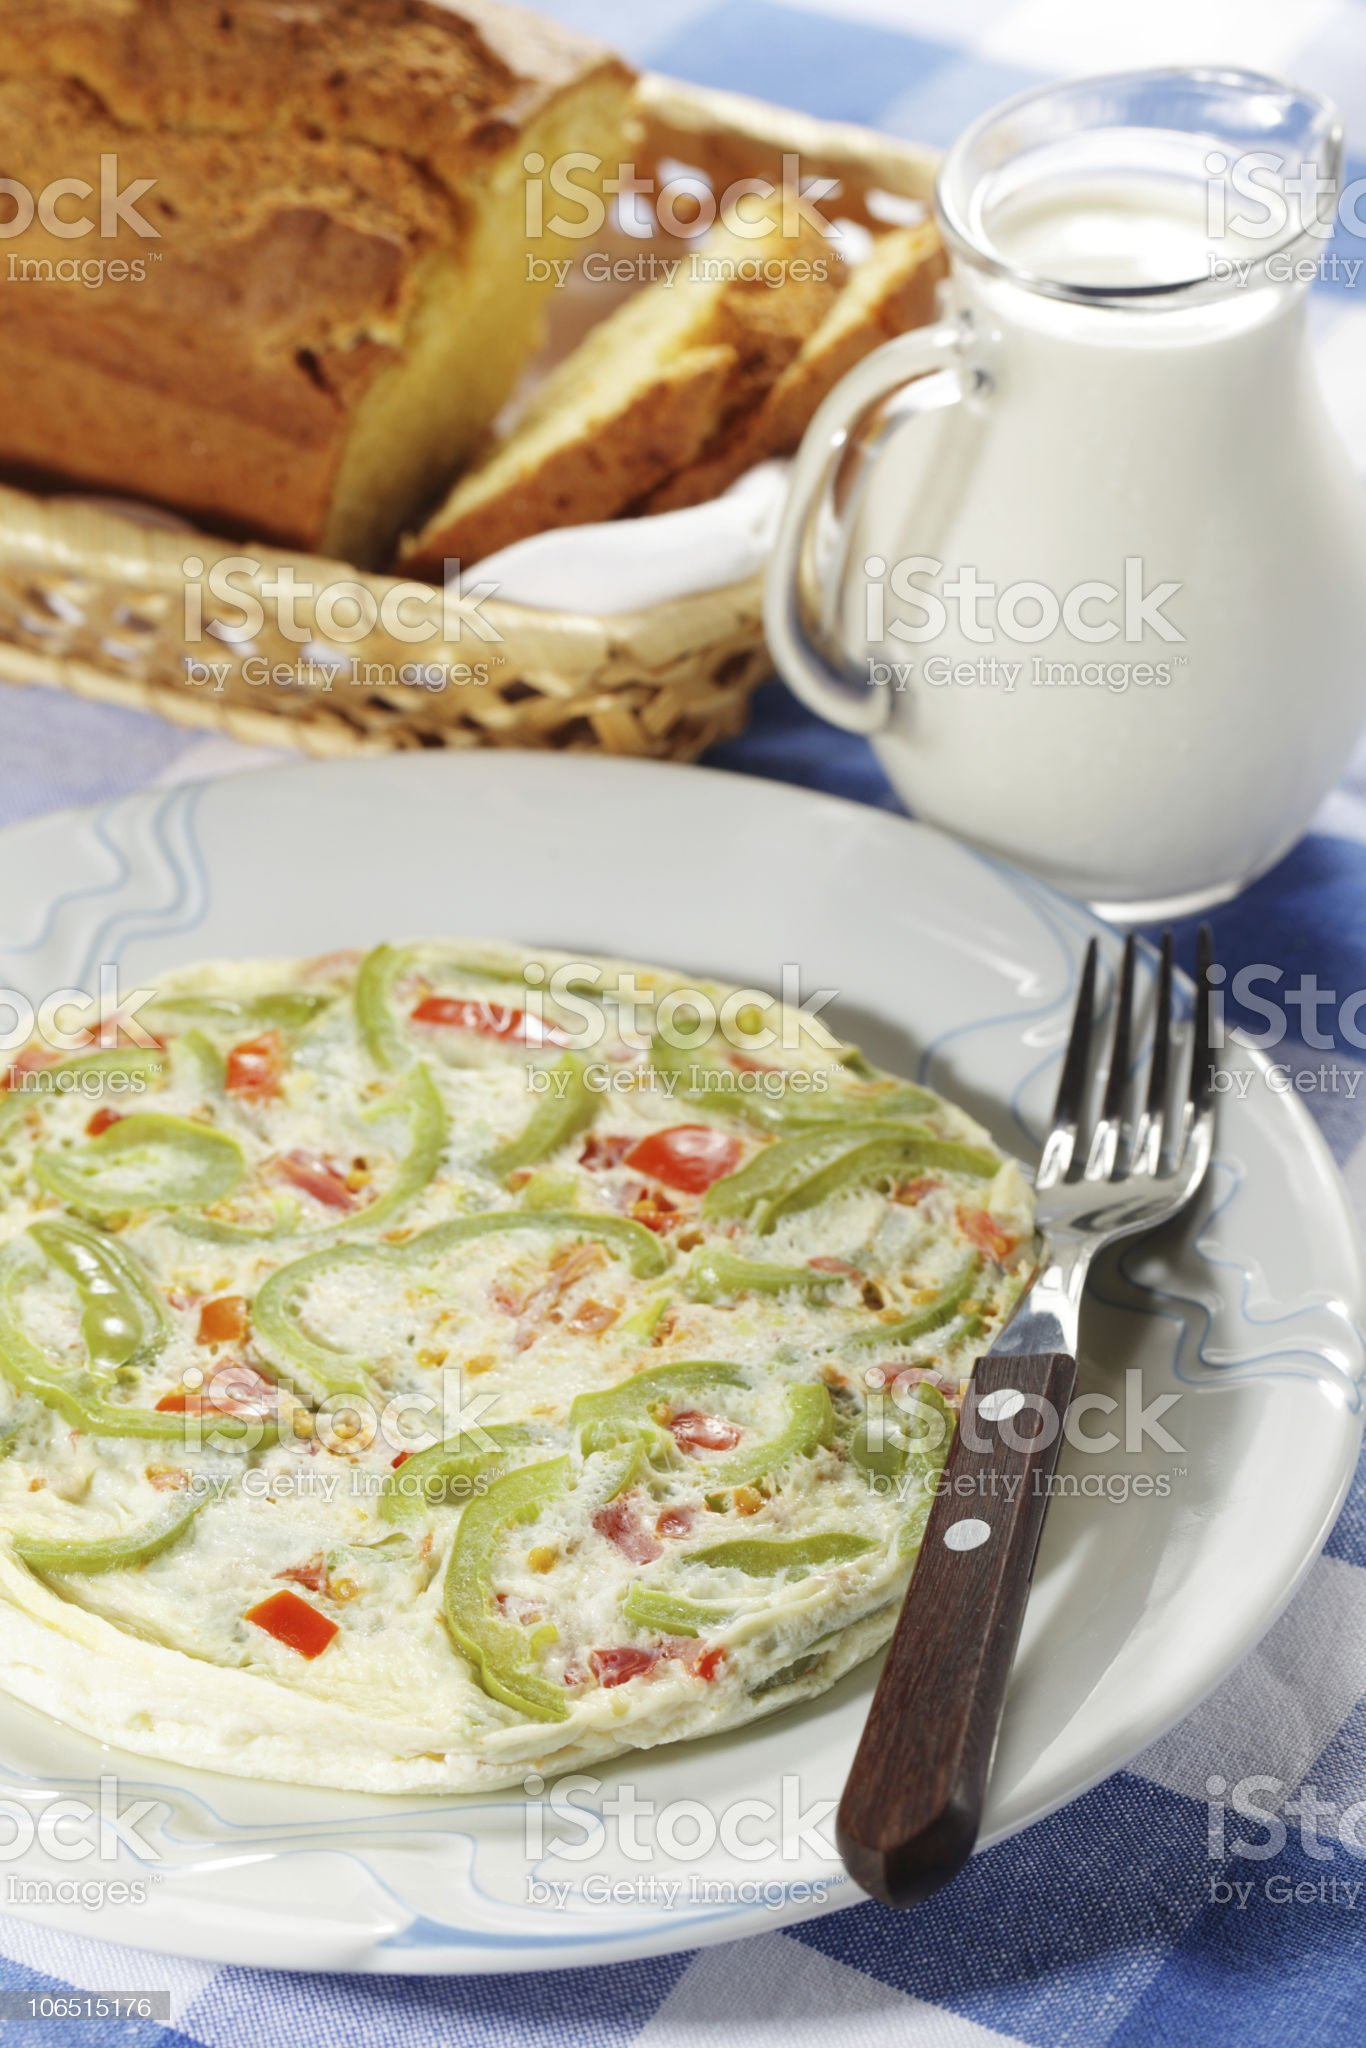 Breakfast with frittata royalty-free stock photo